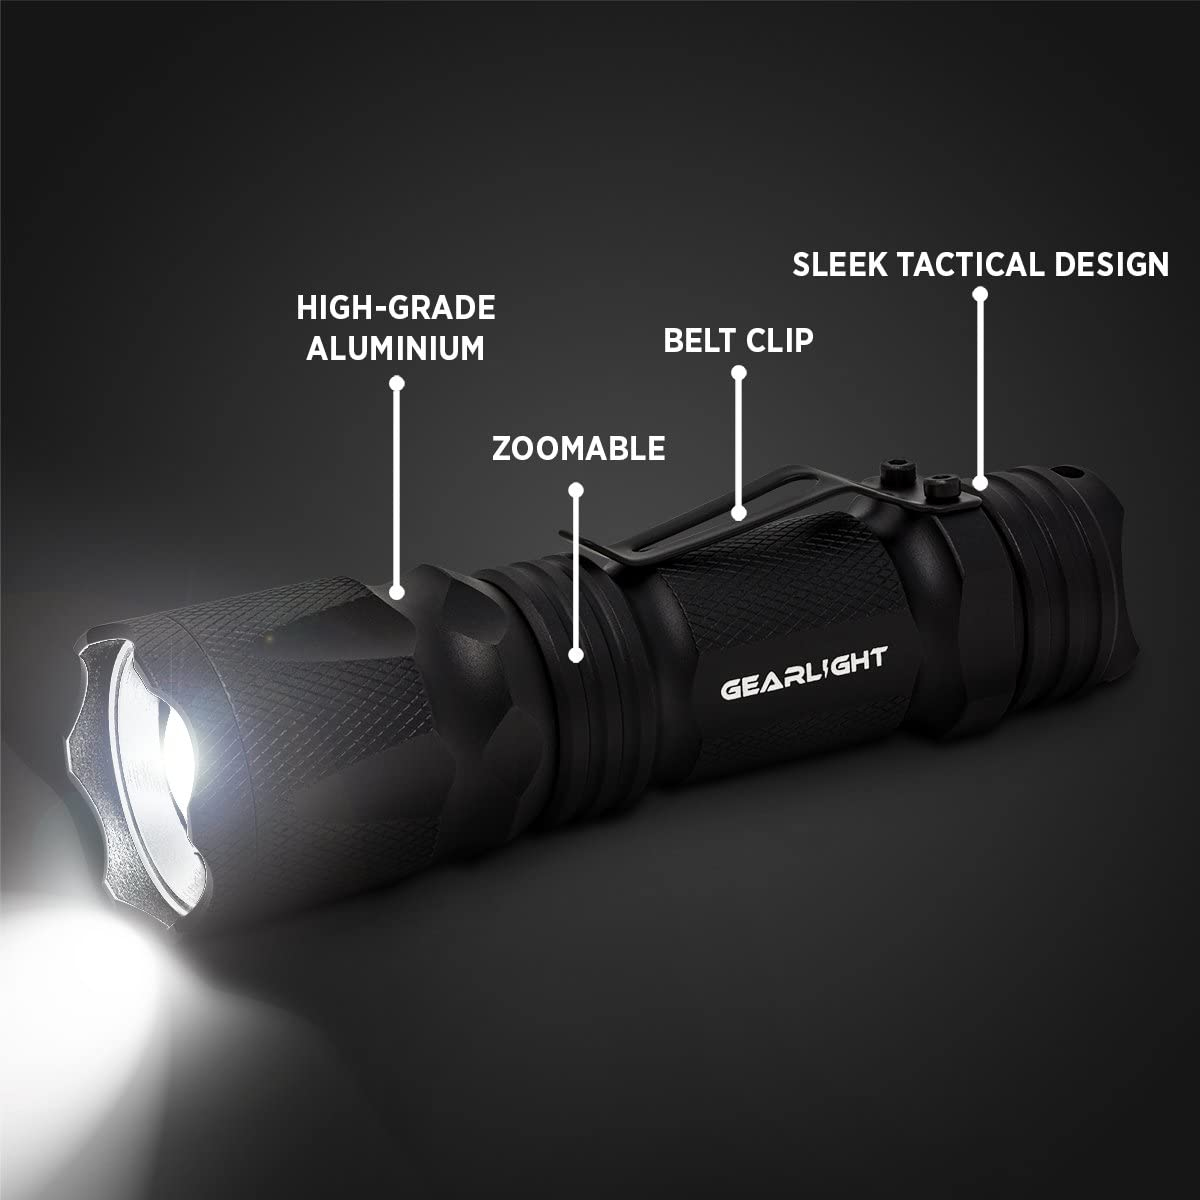 GearLight M3 LED Tactical Flashlight [2 PACK] with Belt Clip, Batteries Included - Zoomable, 3 Modes, Water Resistant, Small Mini Light - Best Everyday Carry Flashlights: Sports & Outdoors